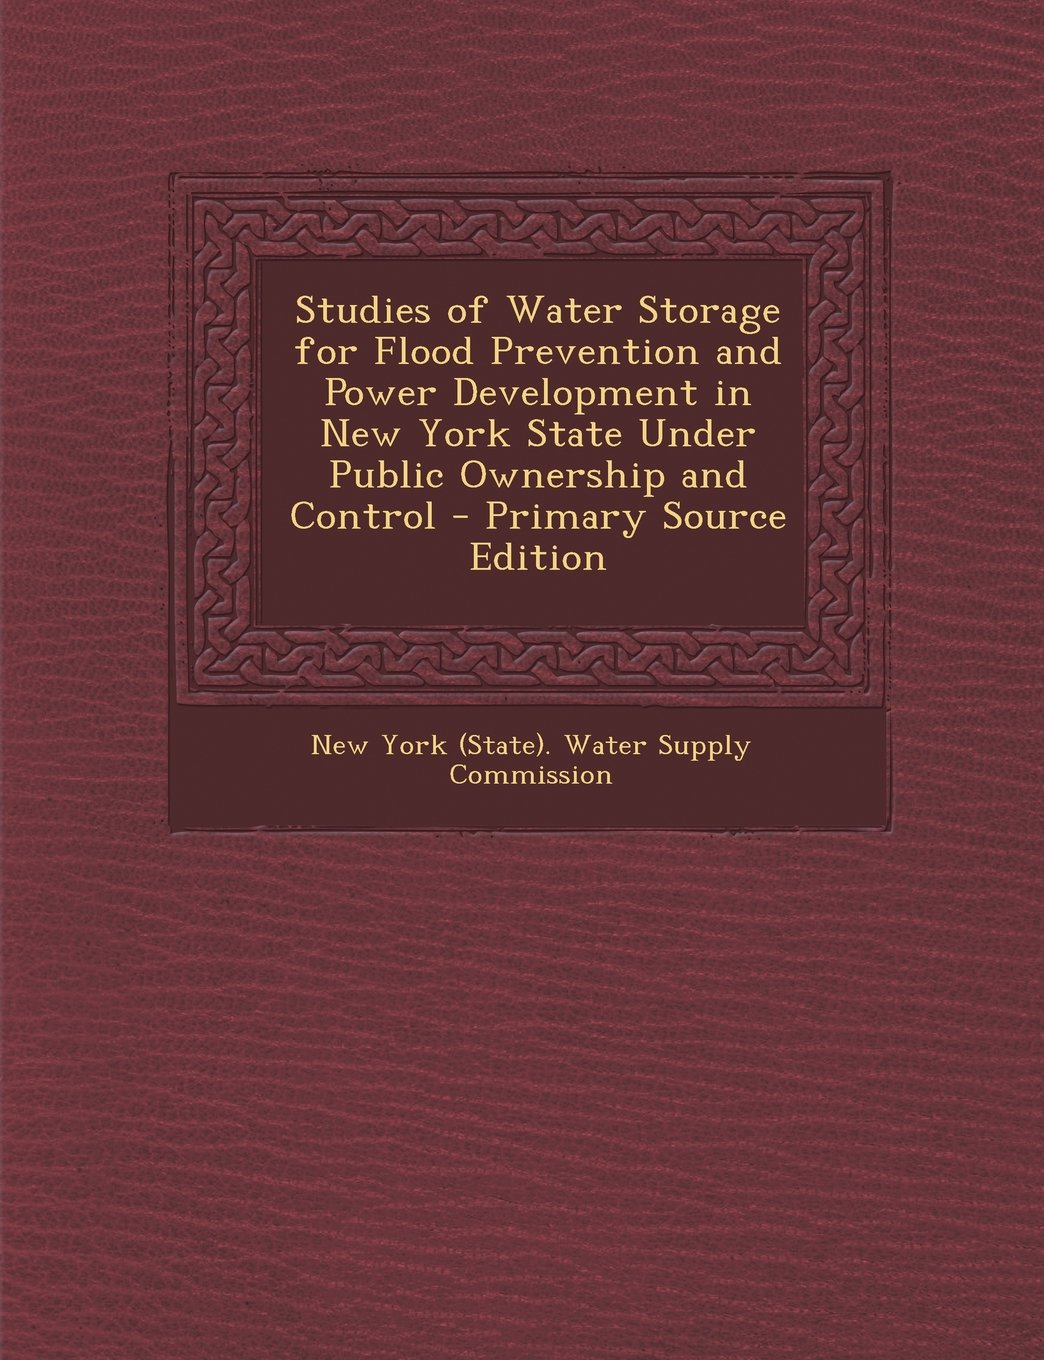 Read Online Studies of Water Storage for Flood Prevention and Power Development in New York State Under Public Ownership and Control PDF